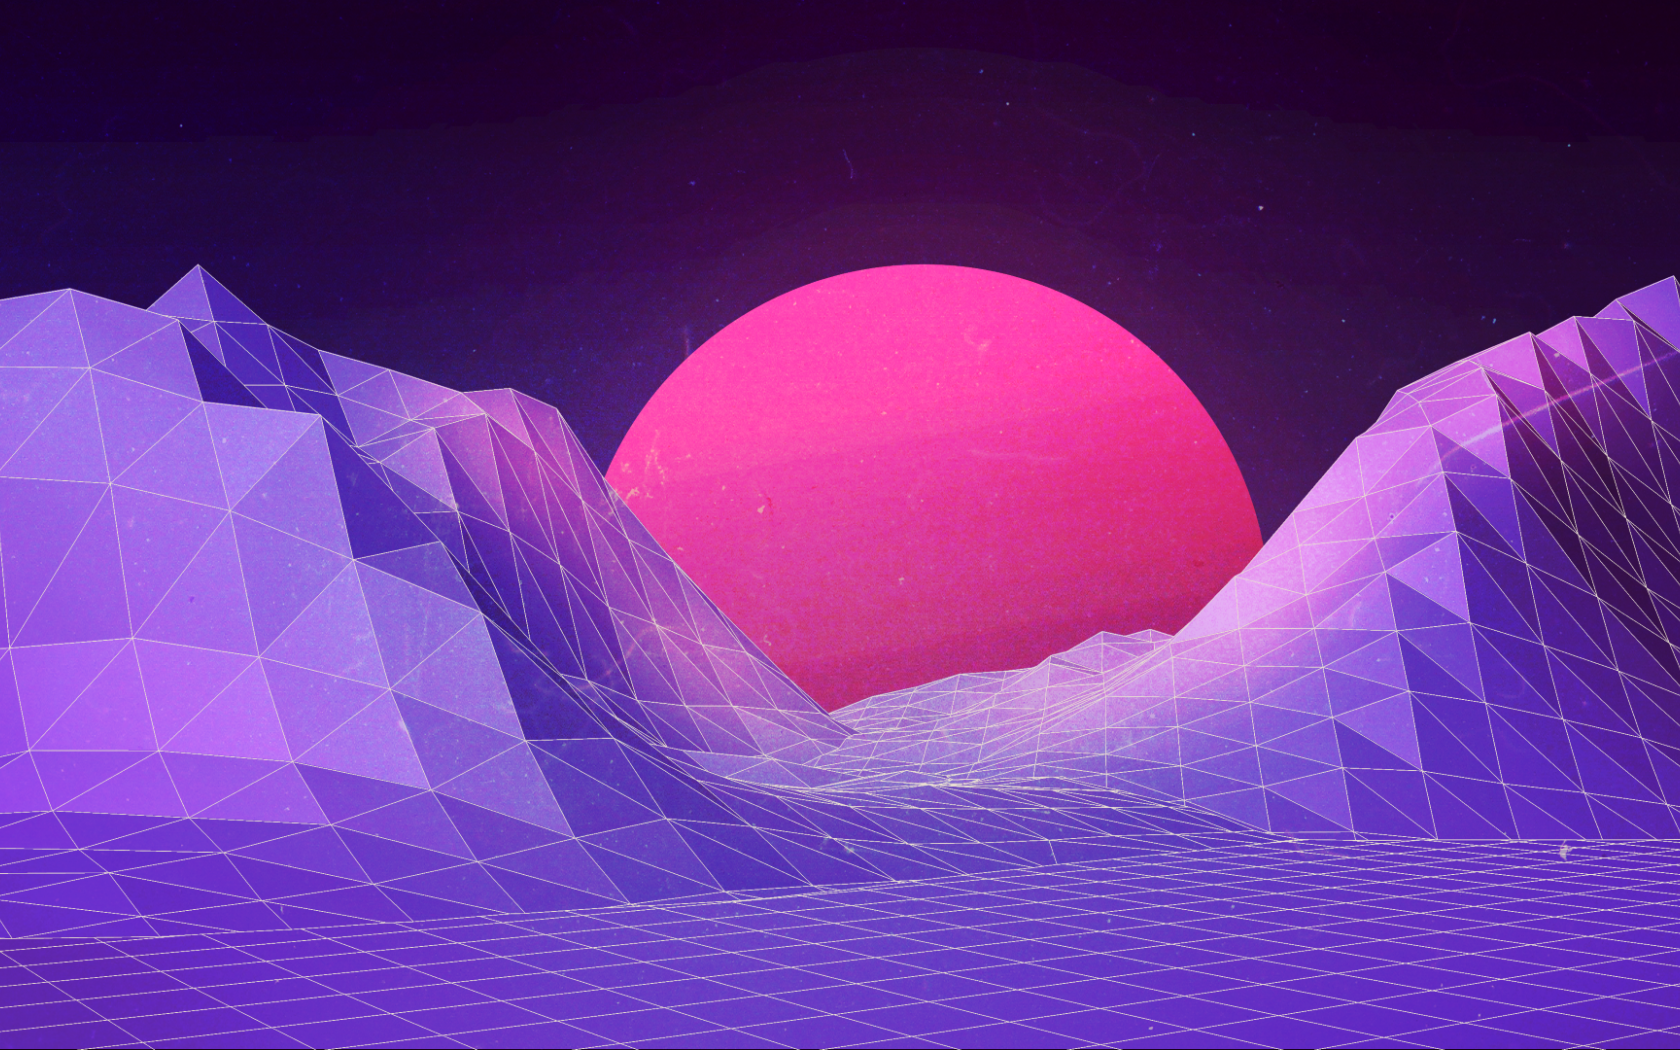 Free Download Aesthetic Vaporwave Wallpapers High Definition At